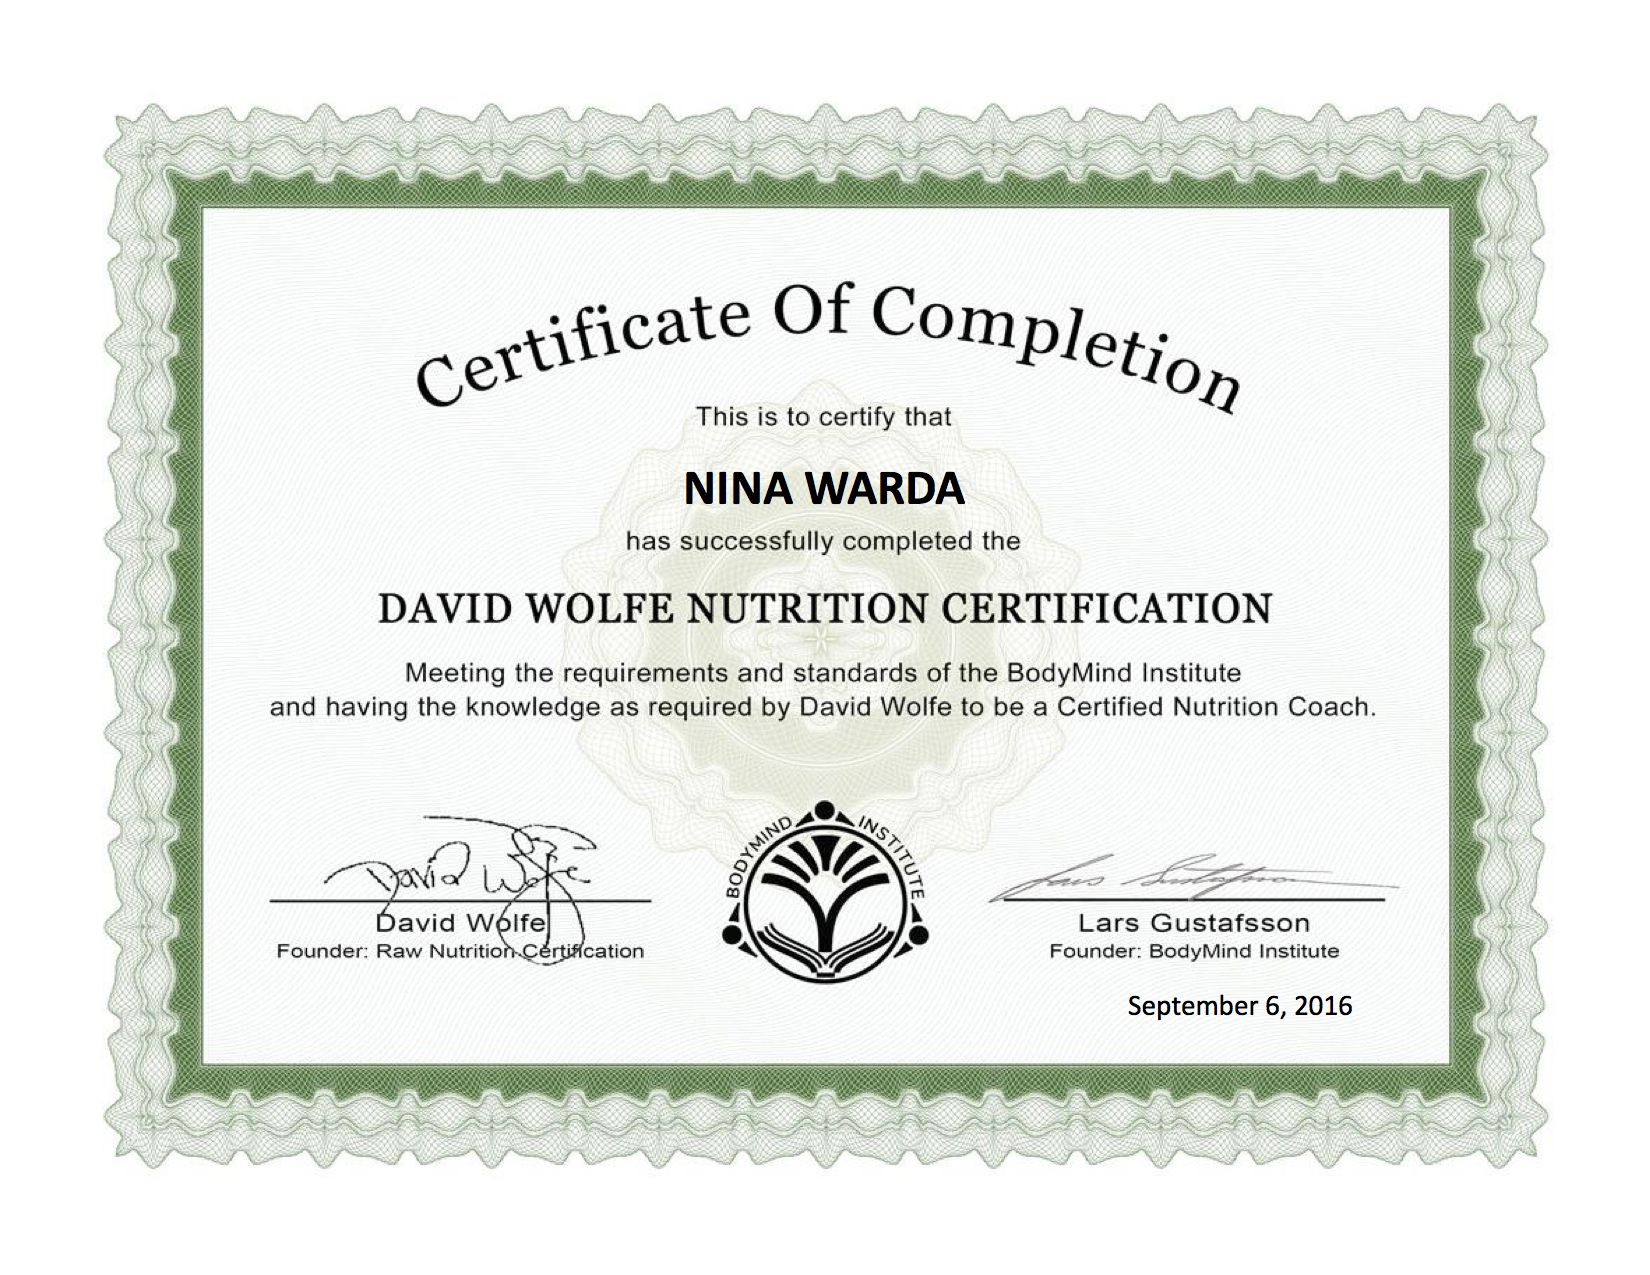 Awesome pictures of nutrition certificate business cards and home nina s organic cucpakes xflitez Images